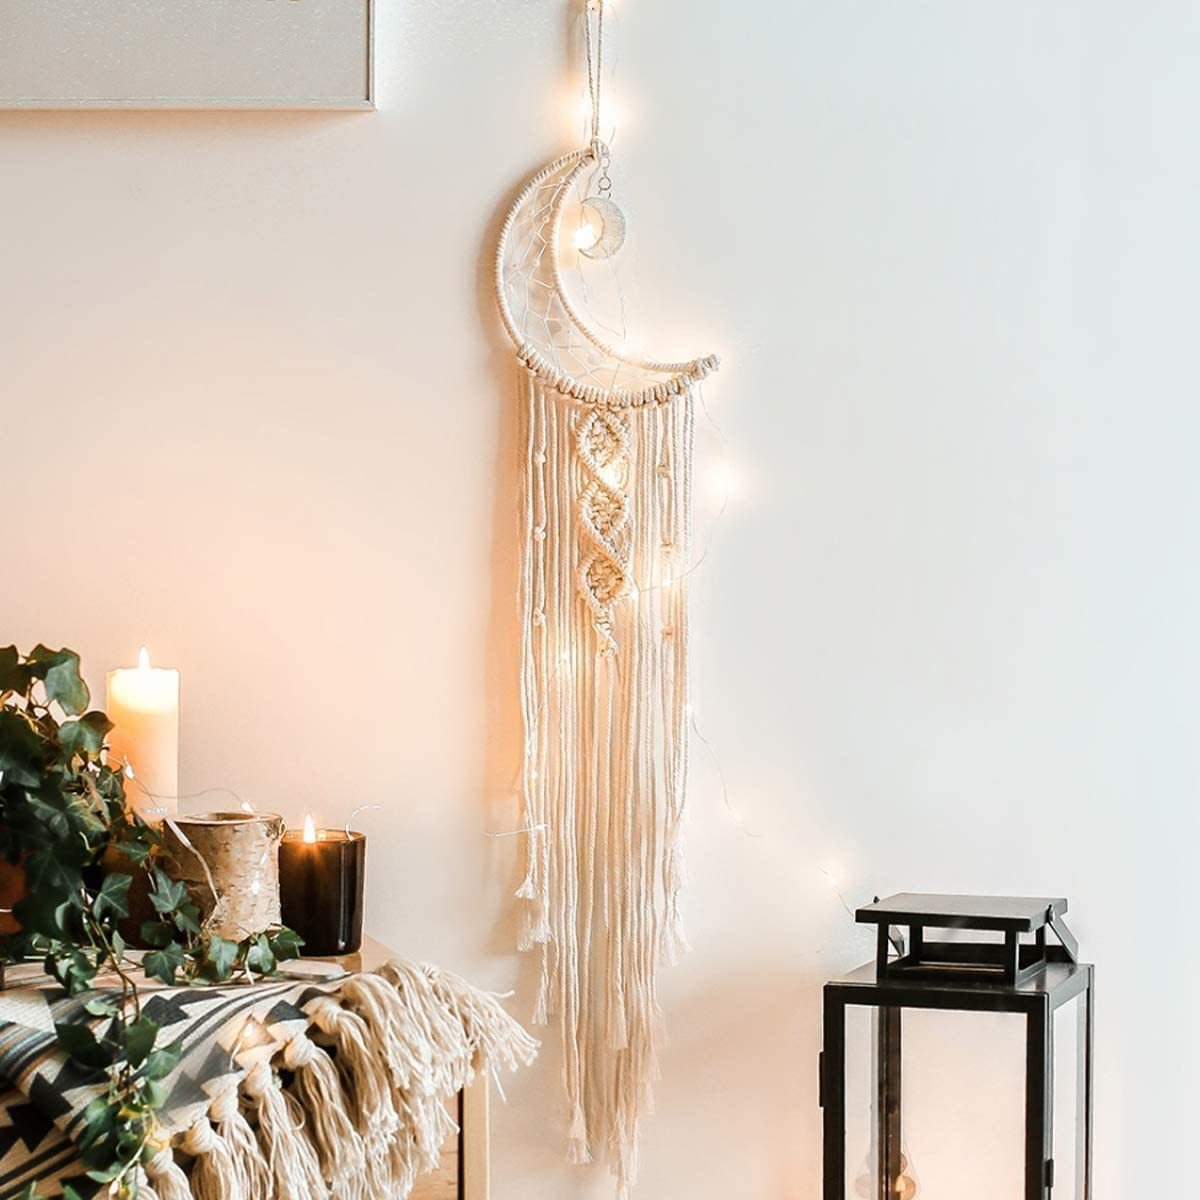 VOWAGH Macrame Wall Hanging Moon Dream Catcher Bohemian Home Decor Tassel Dream Catchers for Kid's Room Mothers Day Festival Gifts 37.79